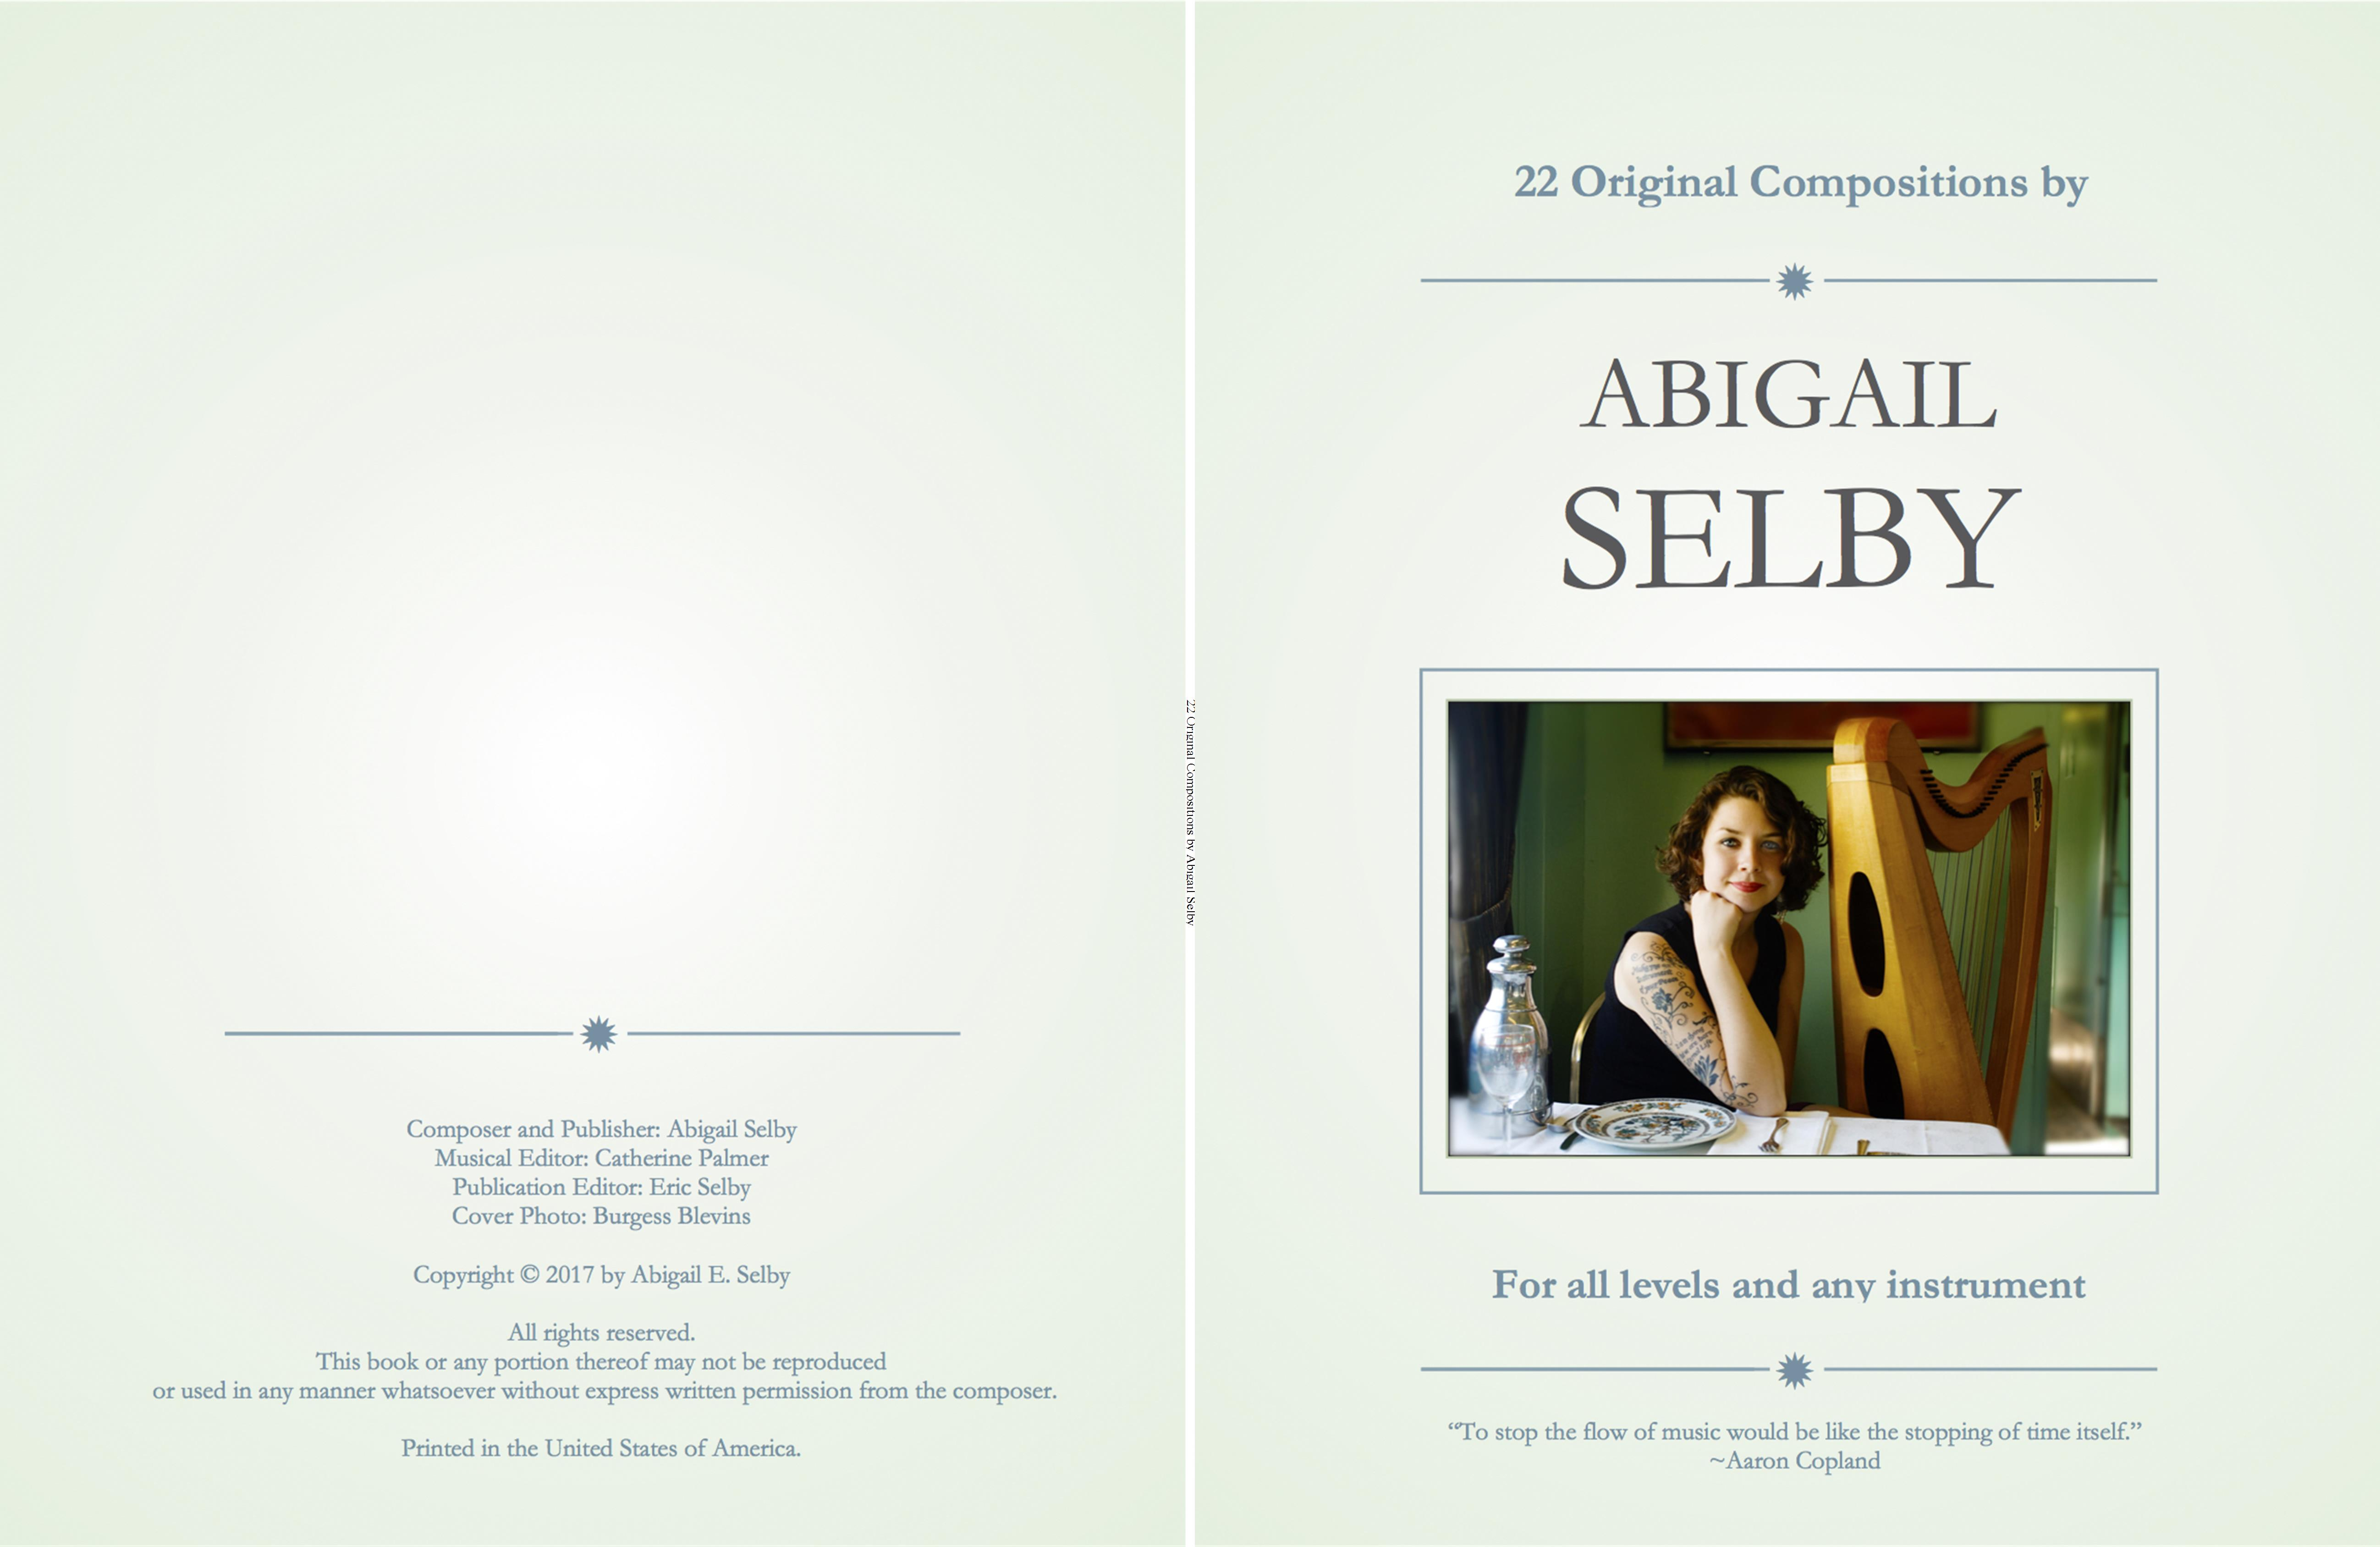 22 Original Compositions by Abigail Selby cover image